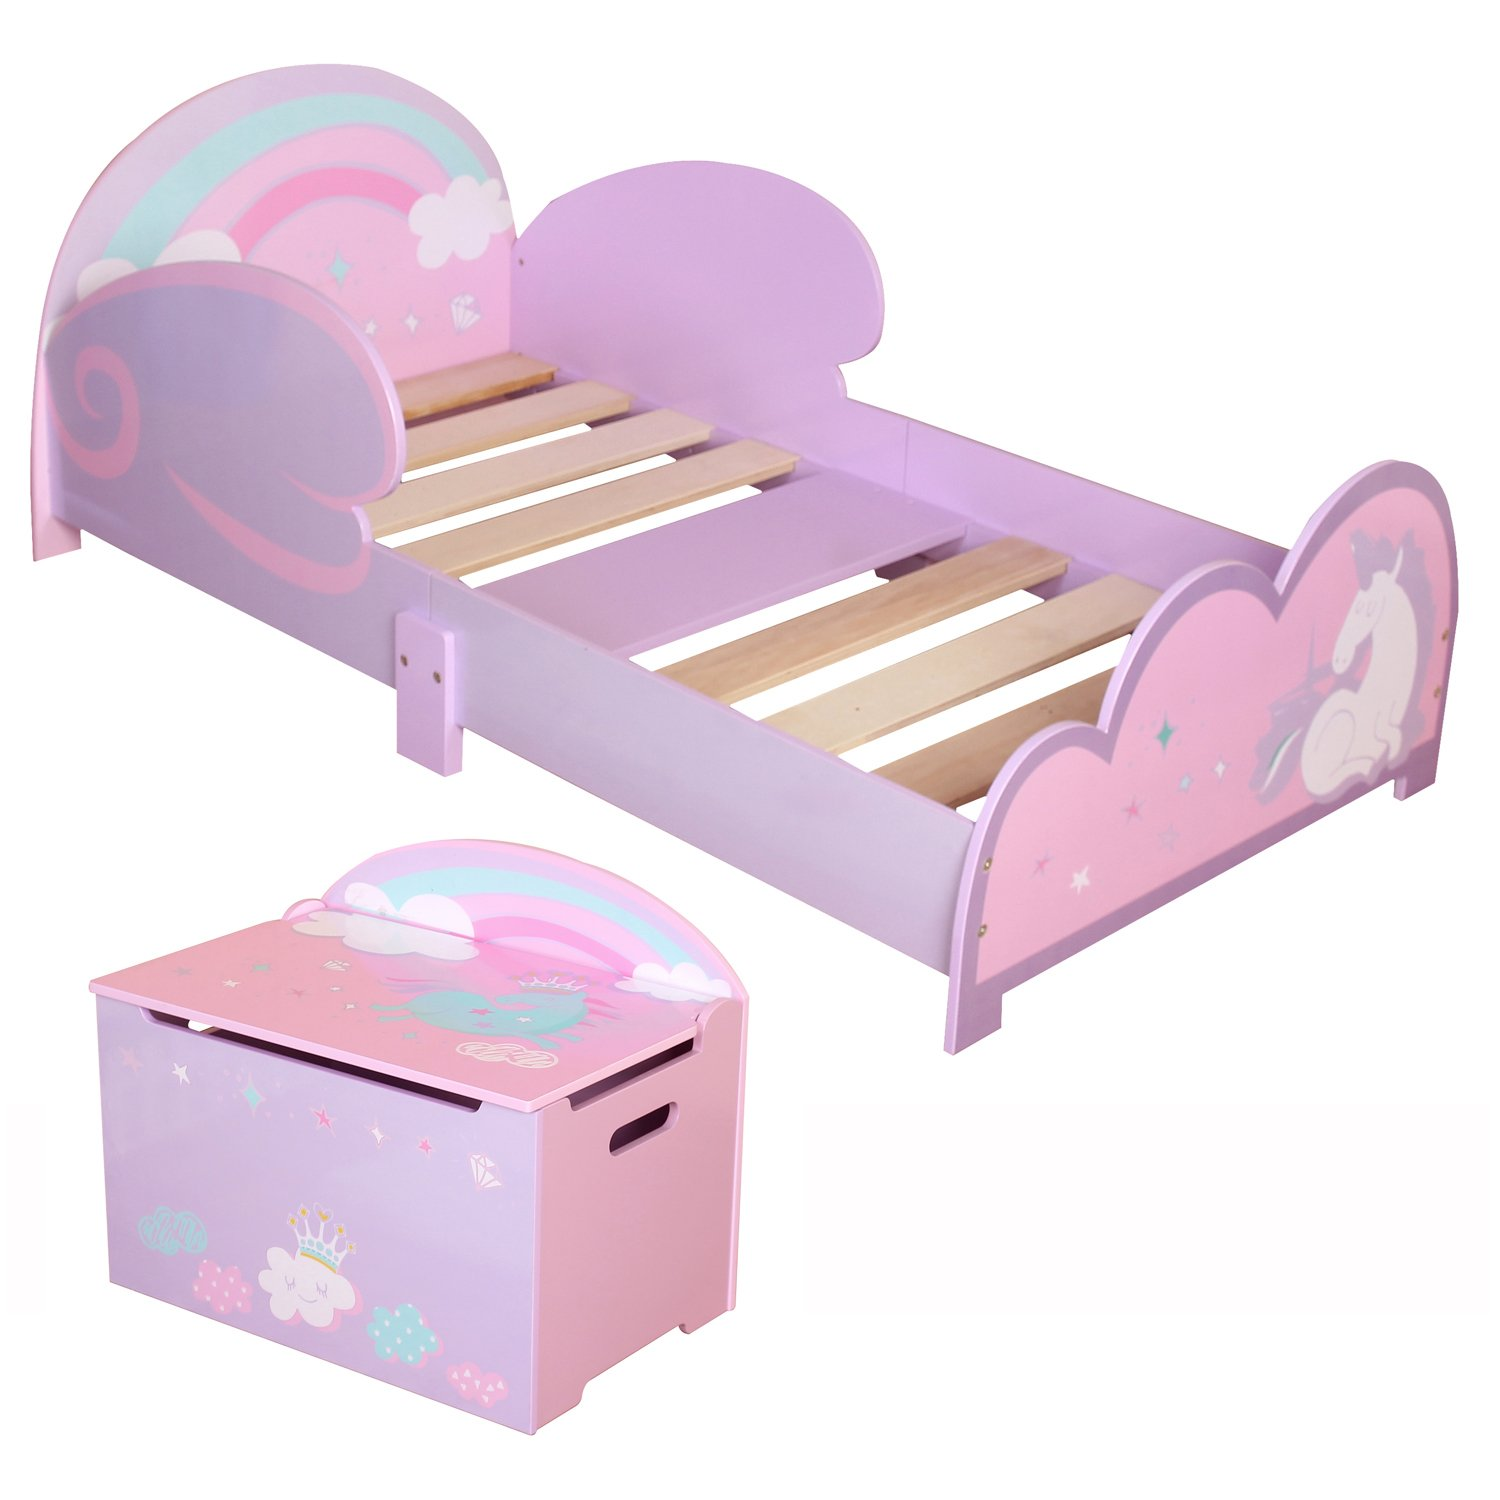 Details About Childrens Kids Toddler Girls Pink Unicorn Bedroom Set Junior  Bed Toy Storage Box